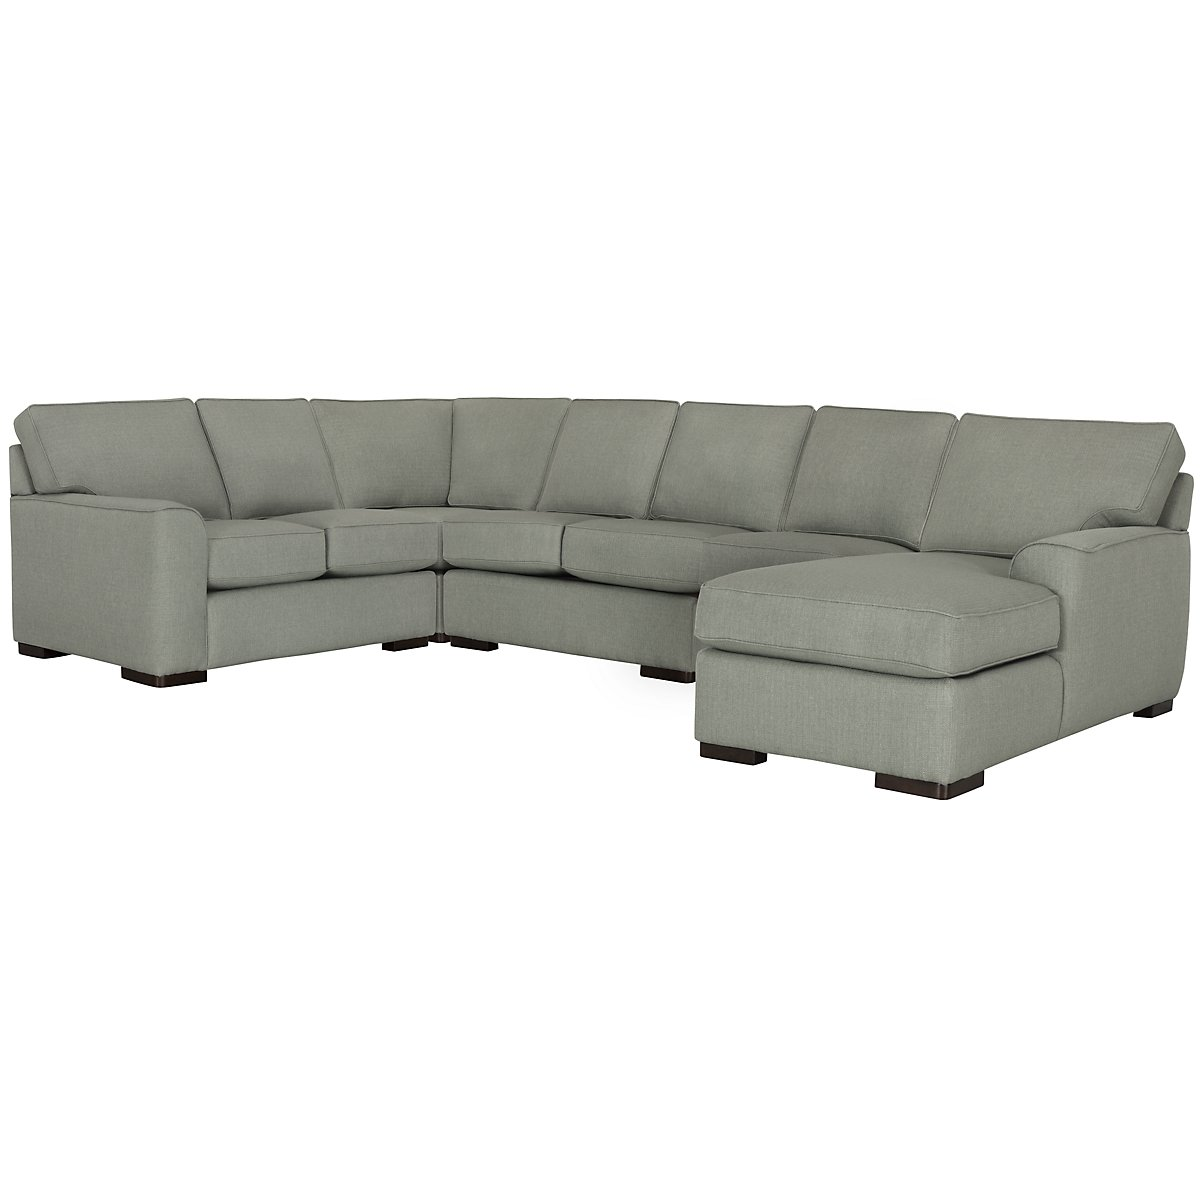 Austin Green Fabric Large Right Chaise Sectional